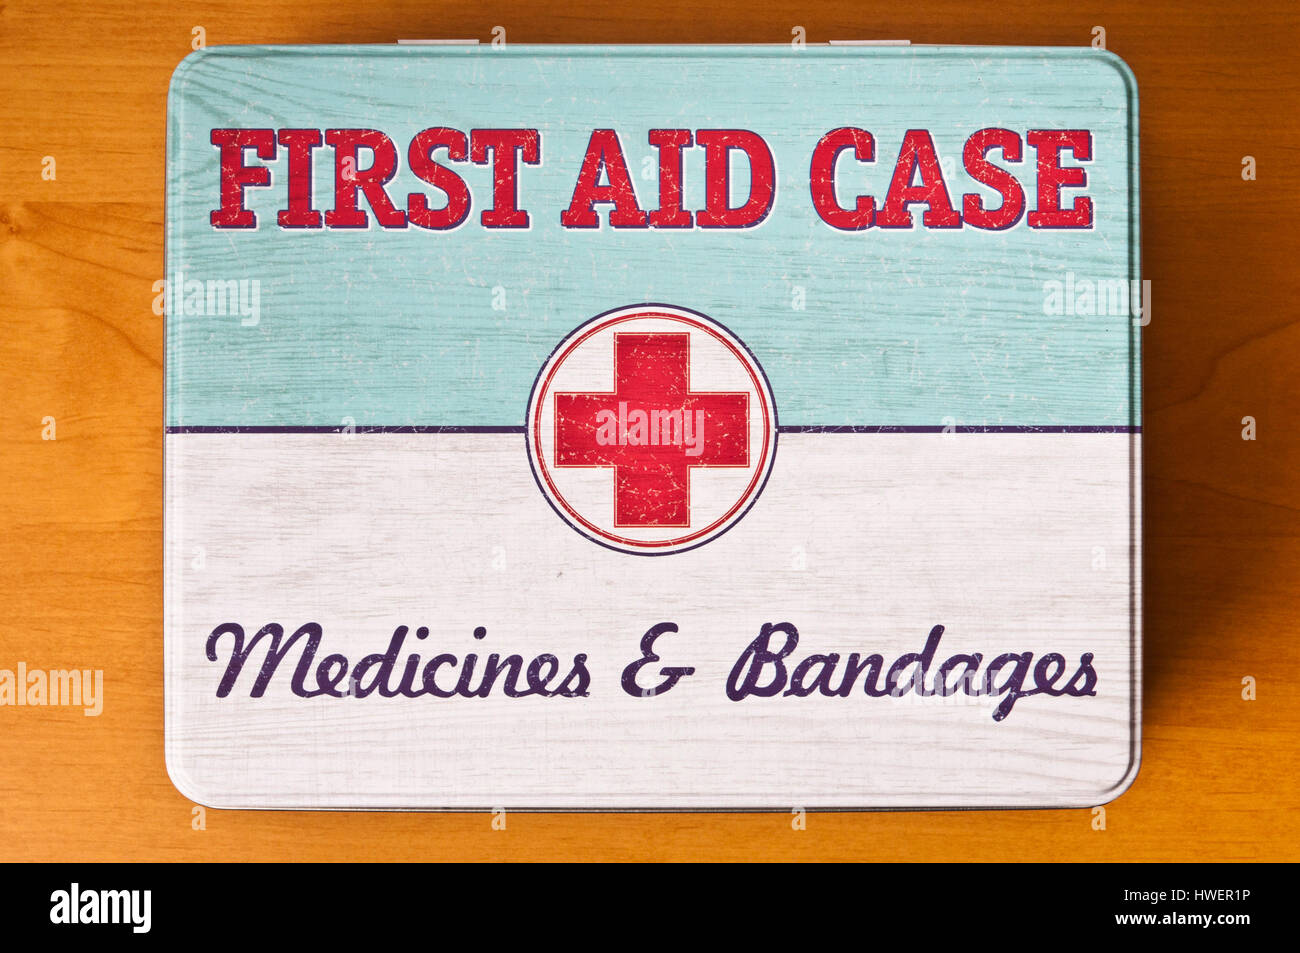 vintage first aid case - Stock Image